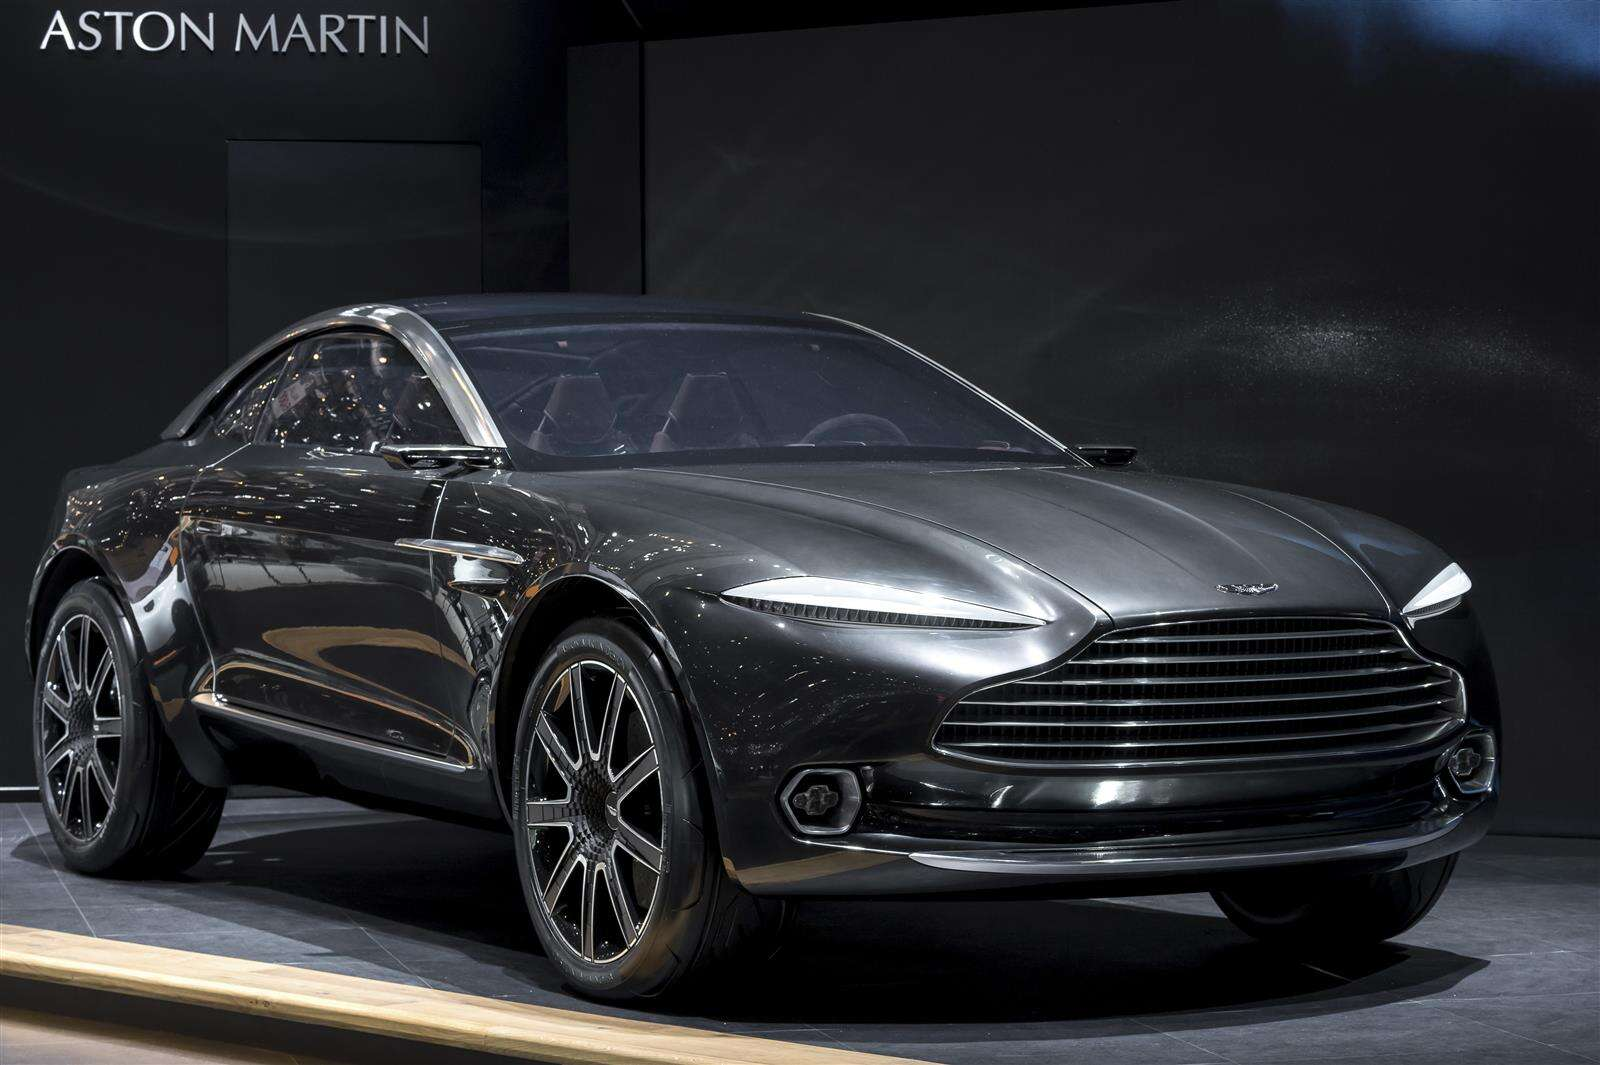 Aston Martin DBX Crossover Headed For 2019 Launch